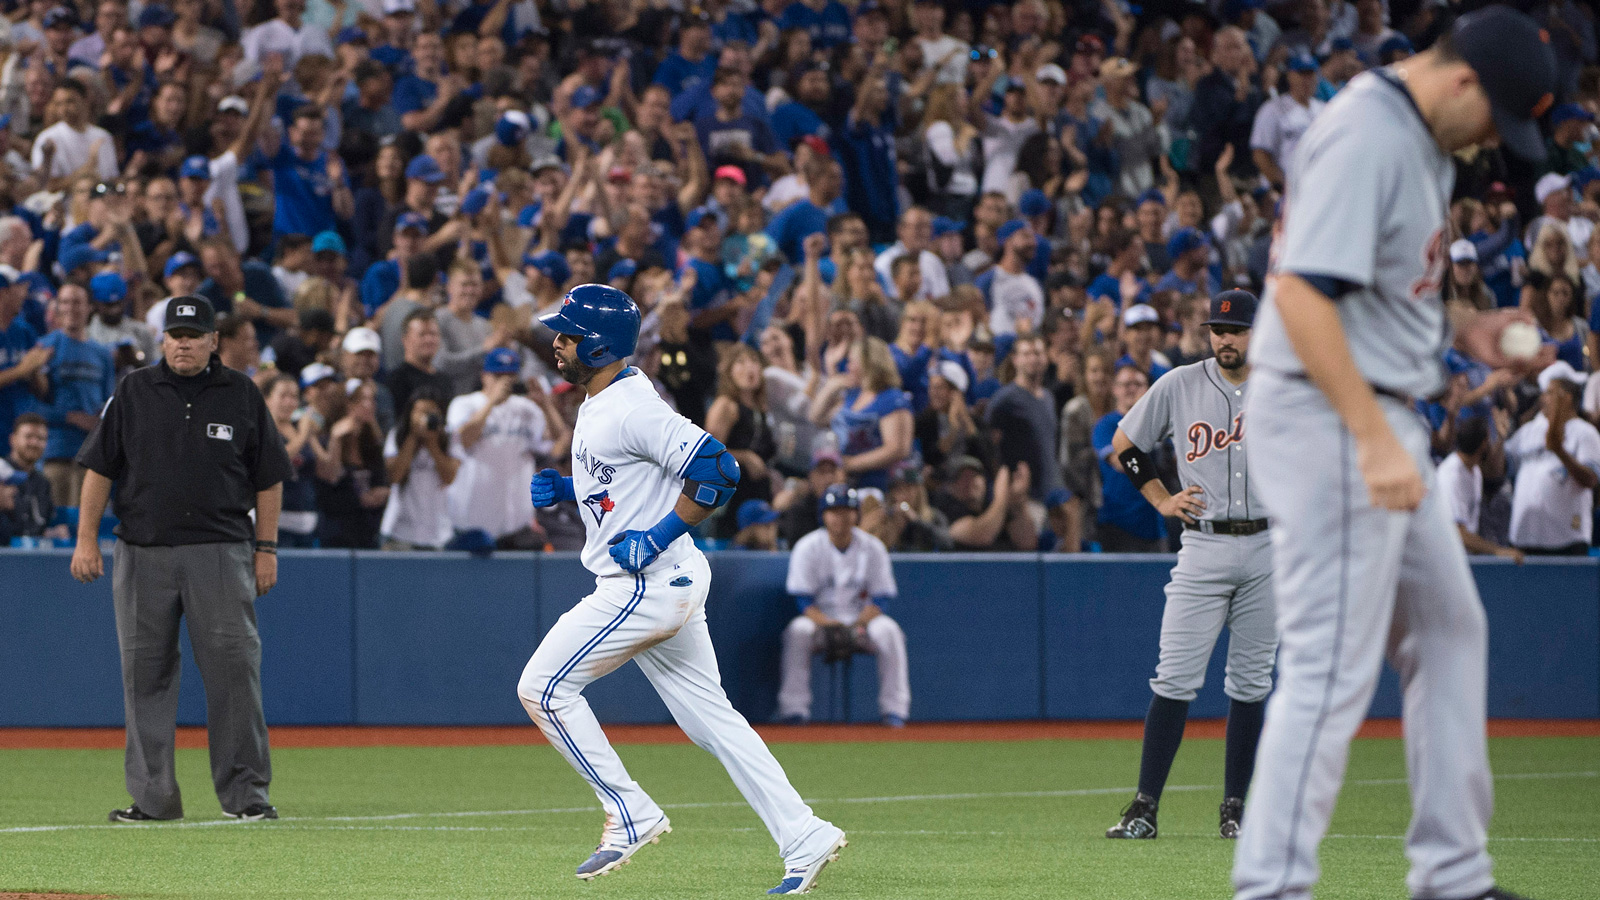 Boyd allows three HRs in Tigers' 5-3 loss to Jays